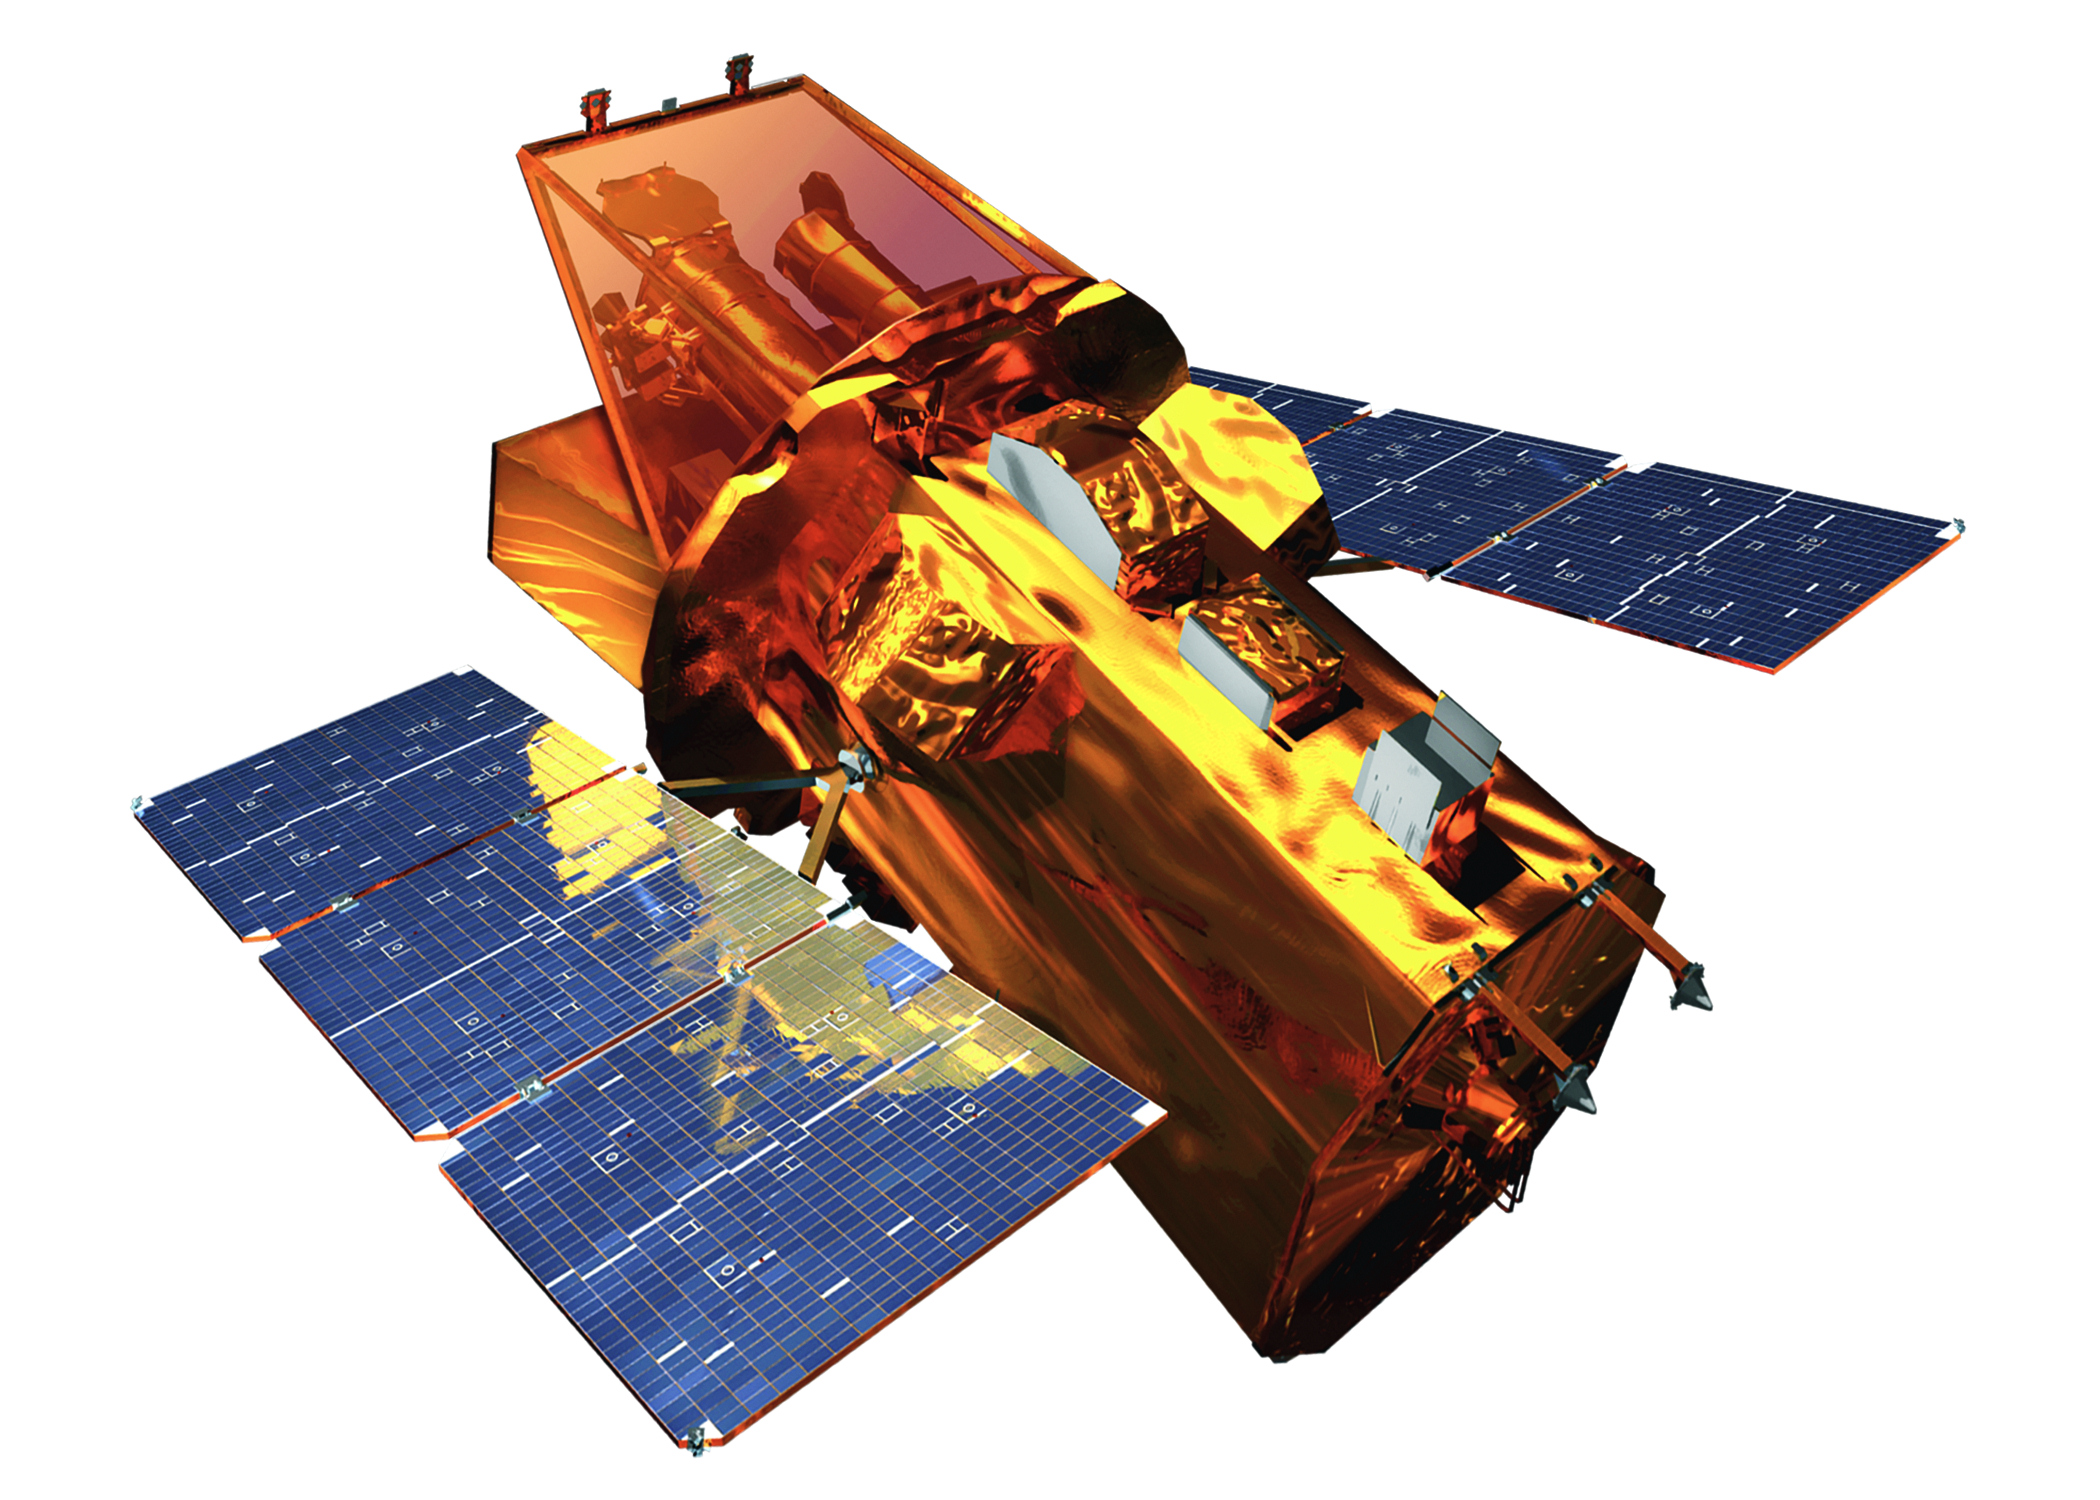 NASA's Swift satellite. Credit: NASA